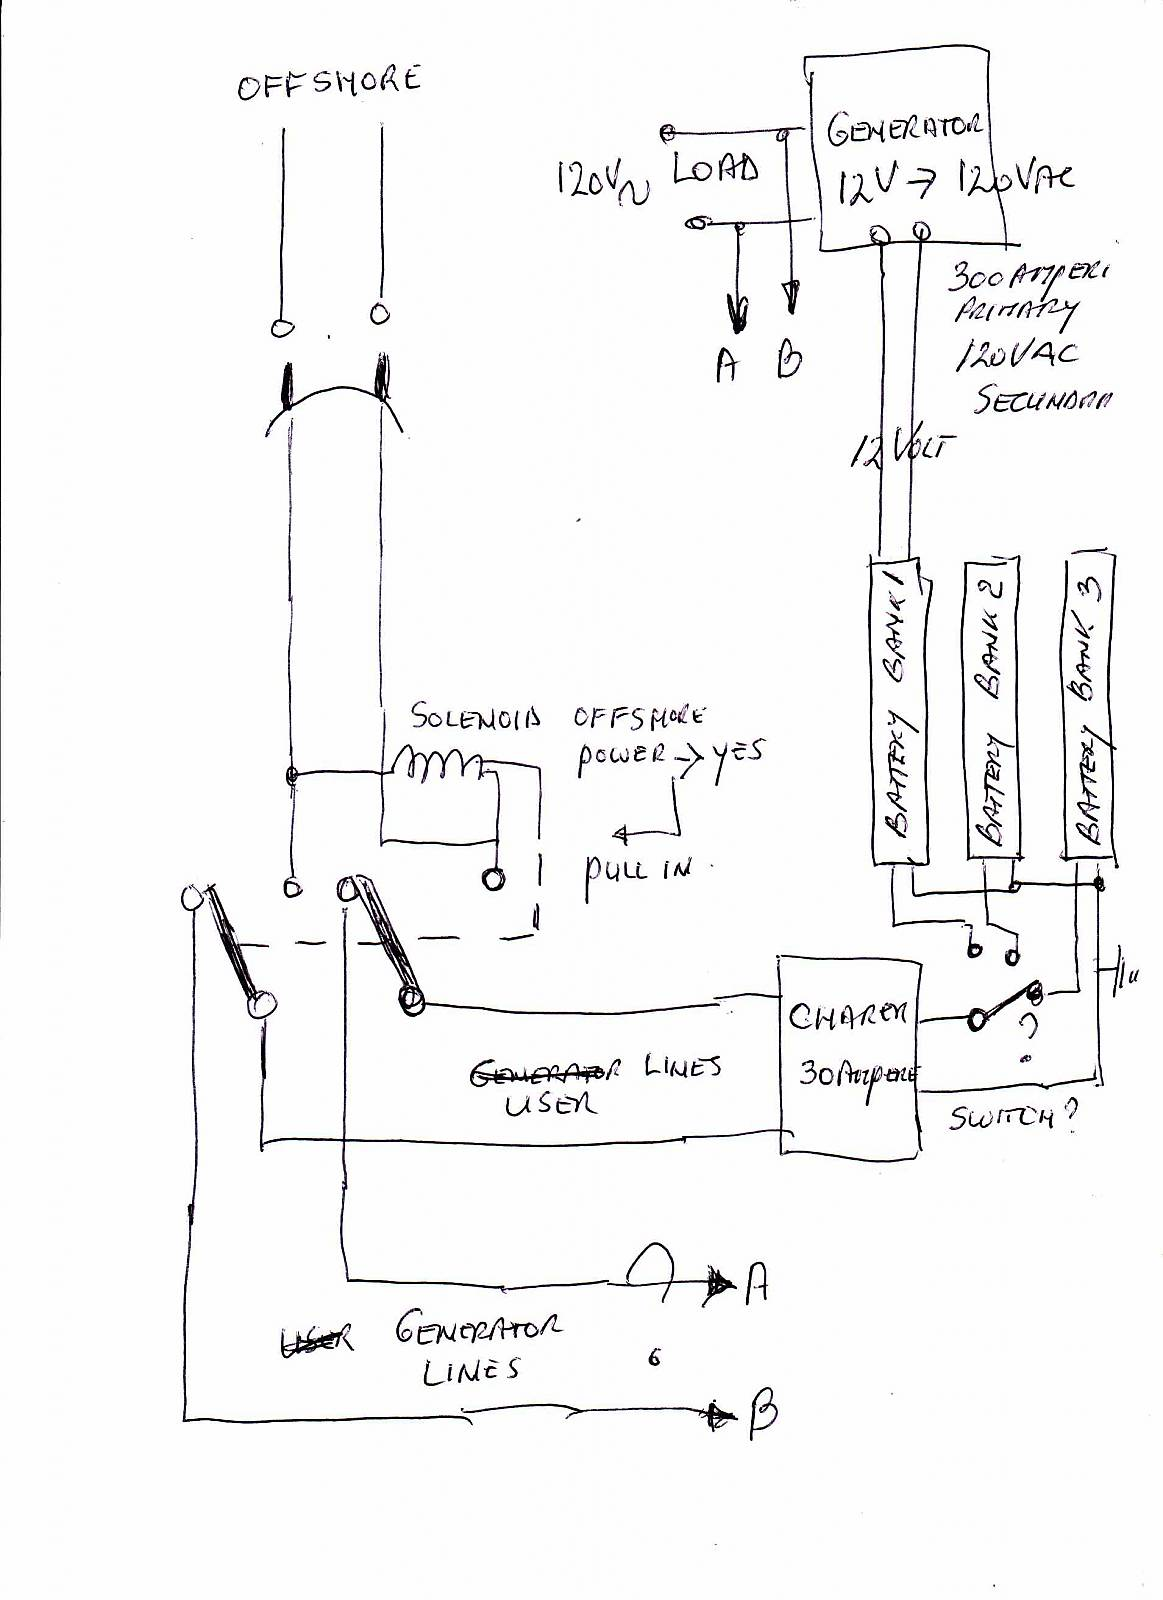 WRG-6273] Onan Generator Remote Switch Wiring Diagram